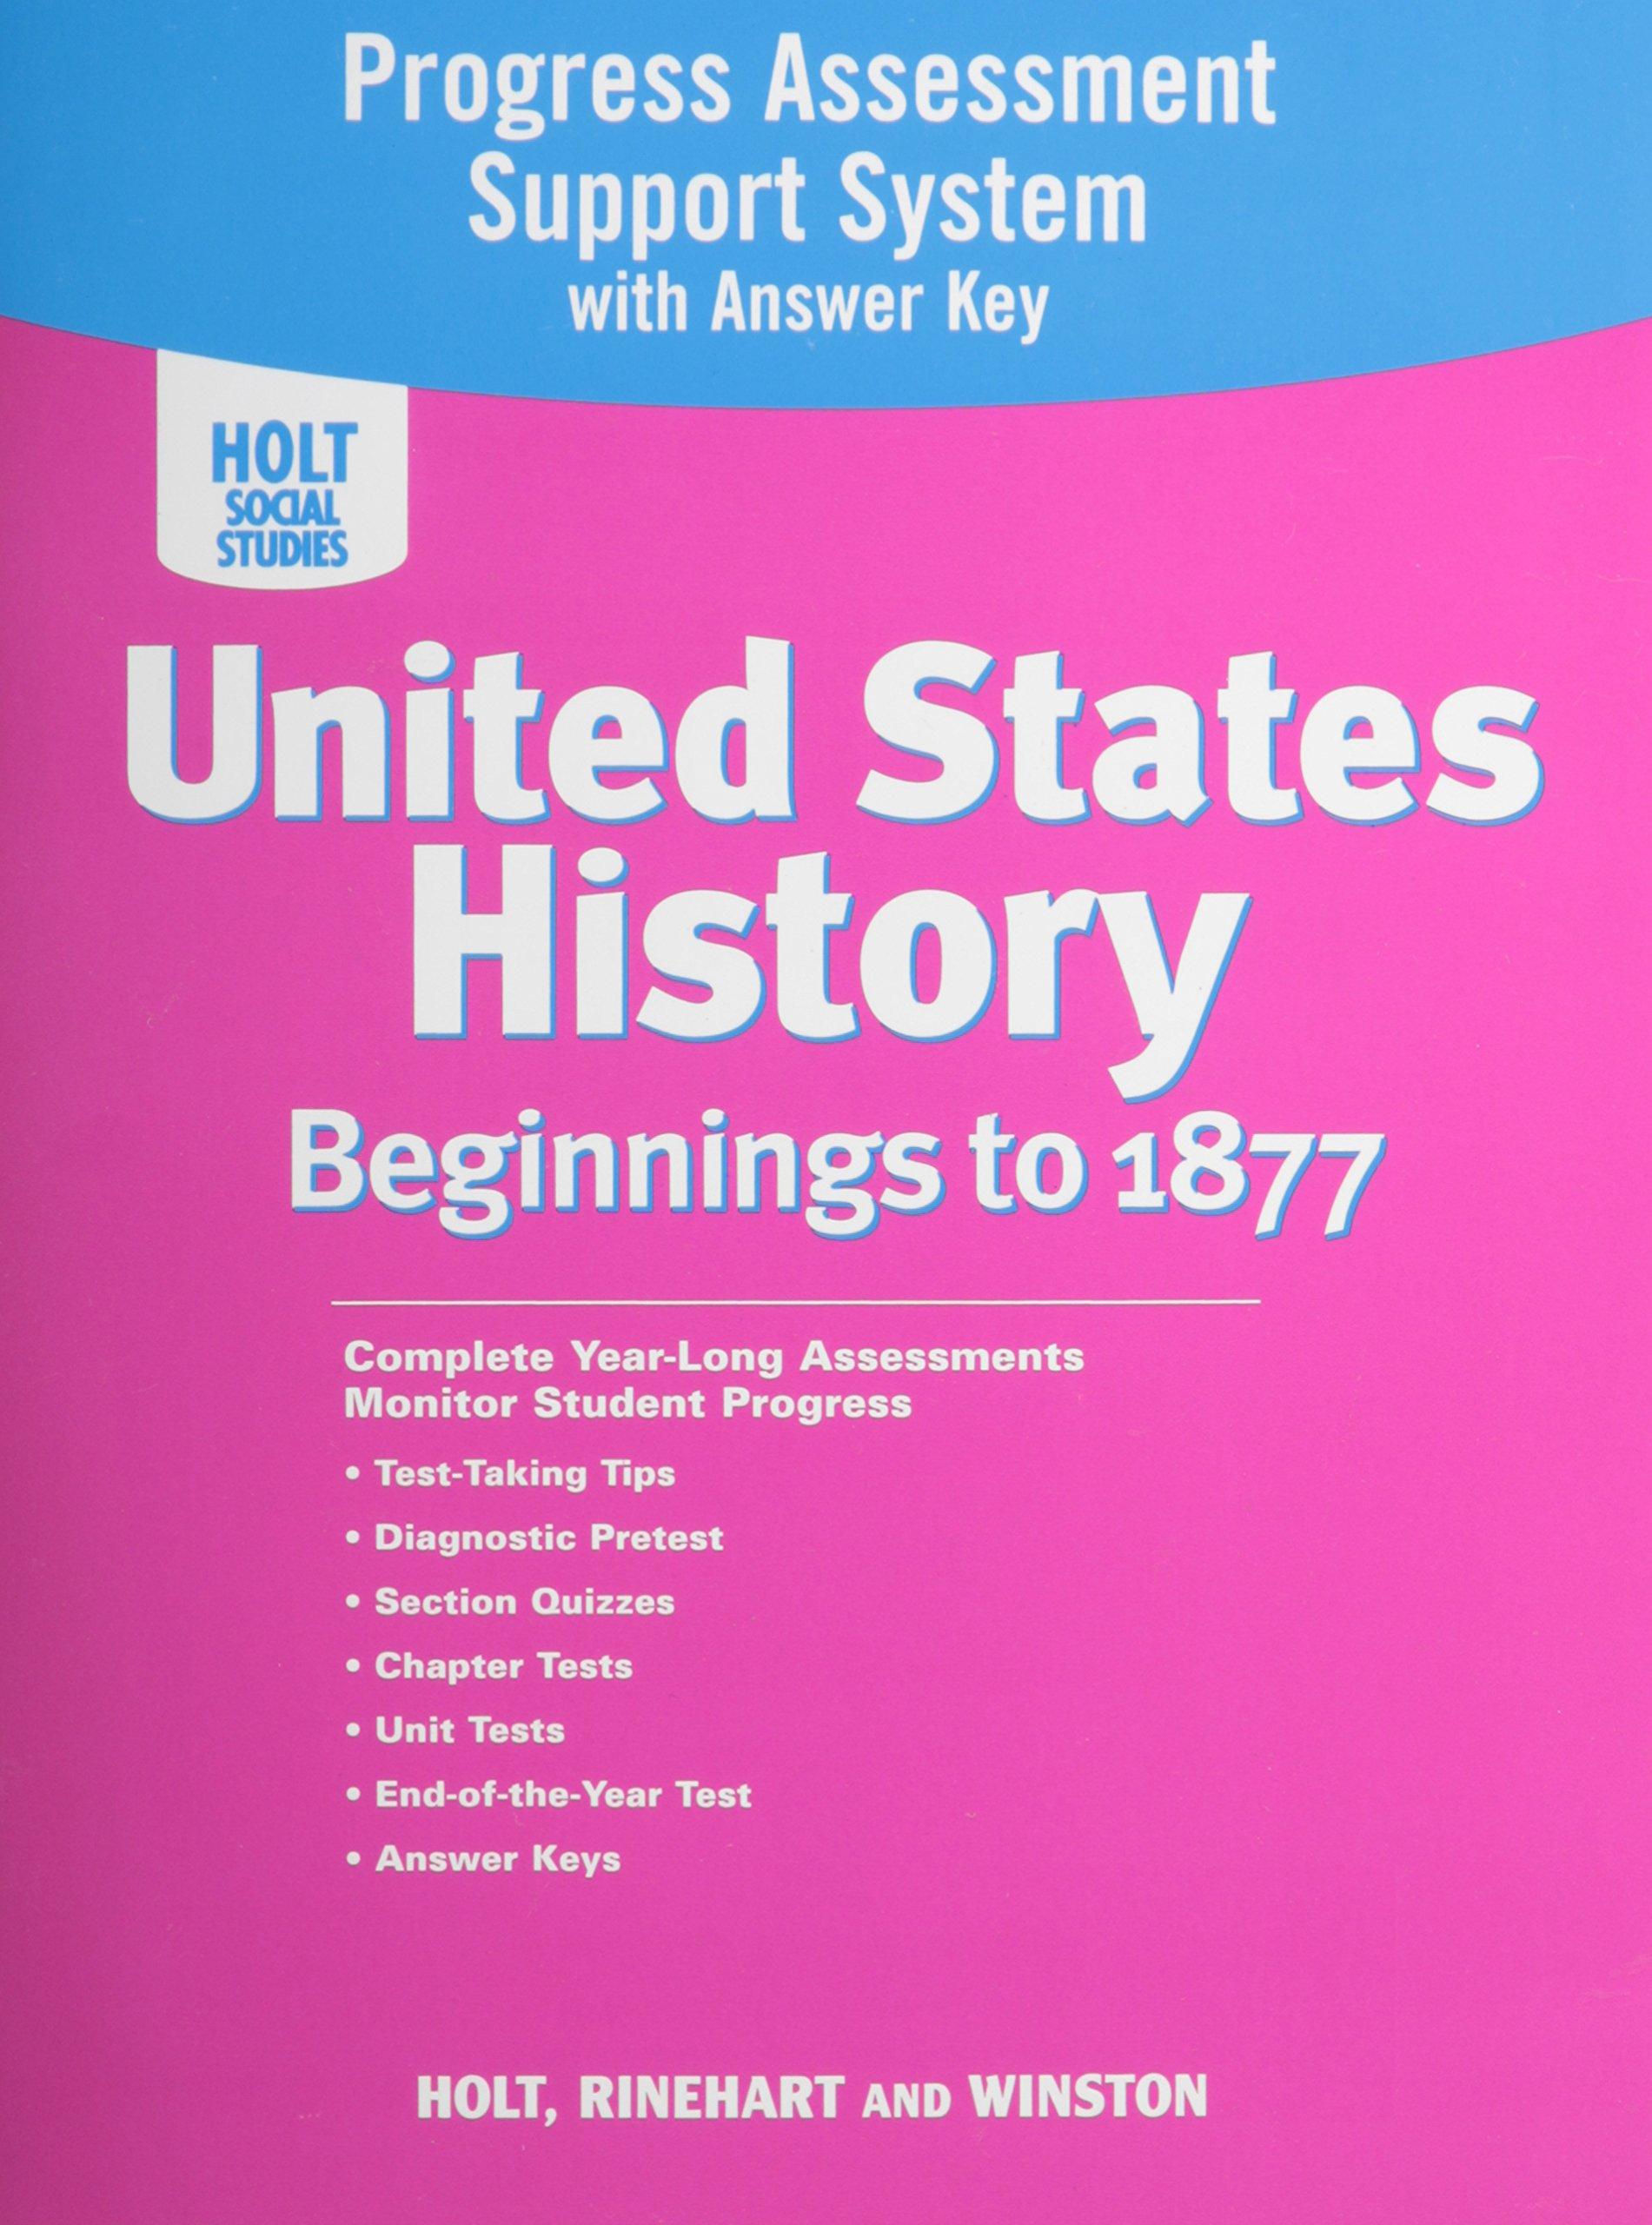 Holt United States History Progress Assessment Support System with Answer Key Grades 6-8 Beginnings To 1877 PDF